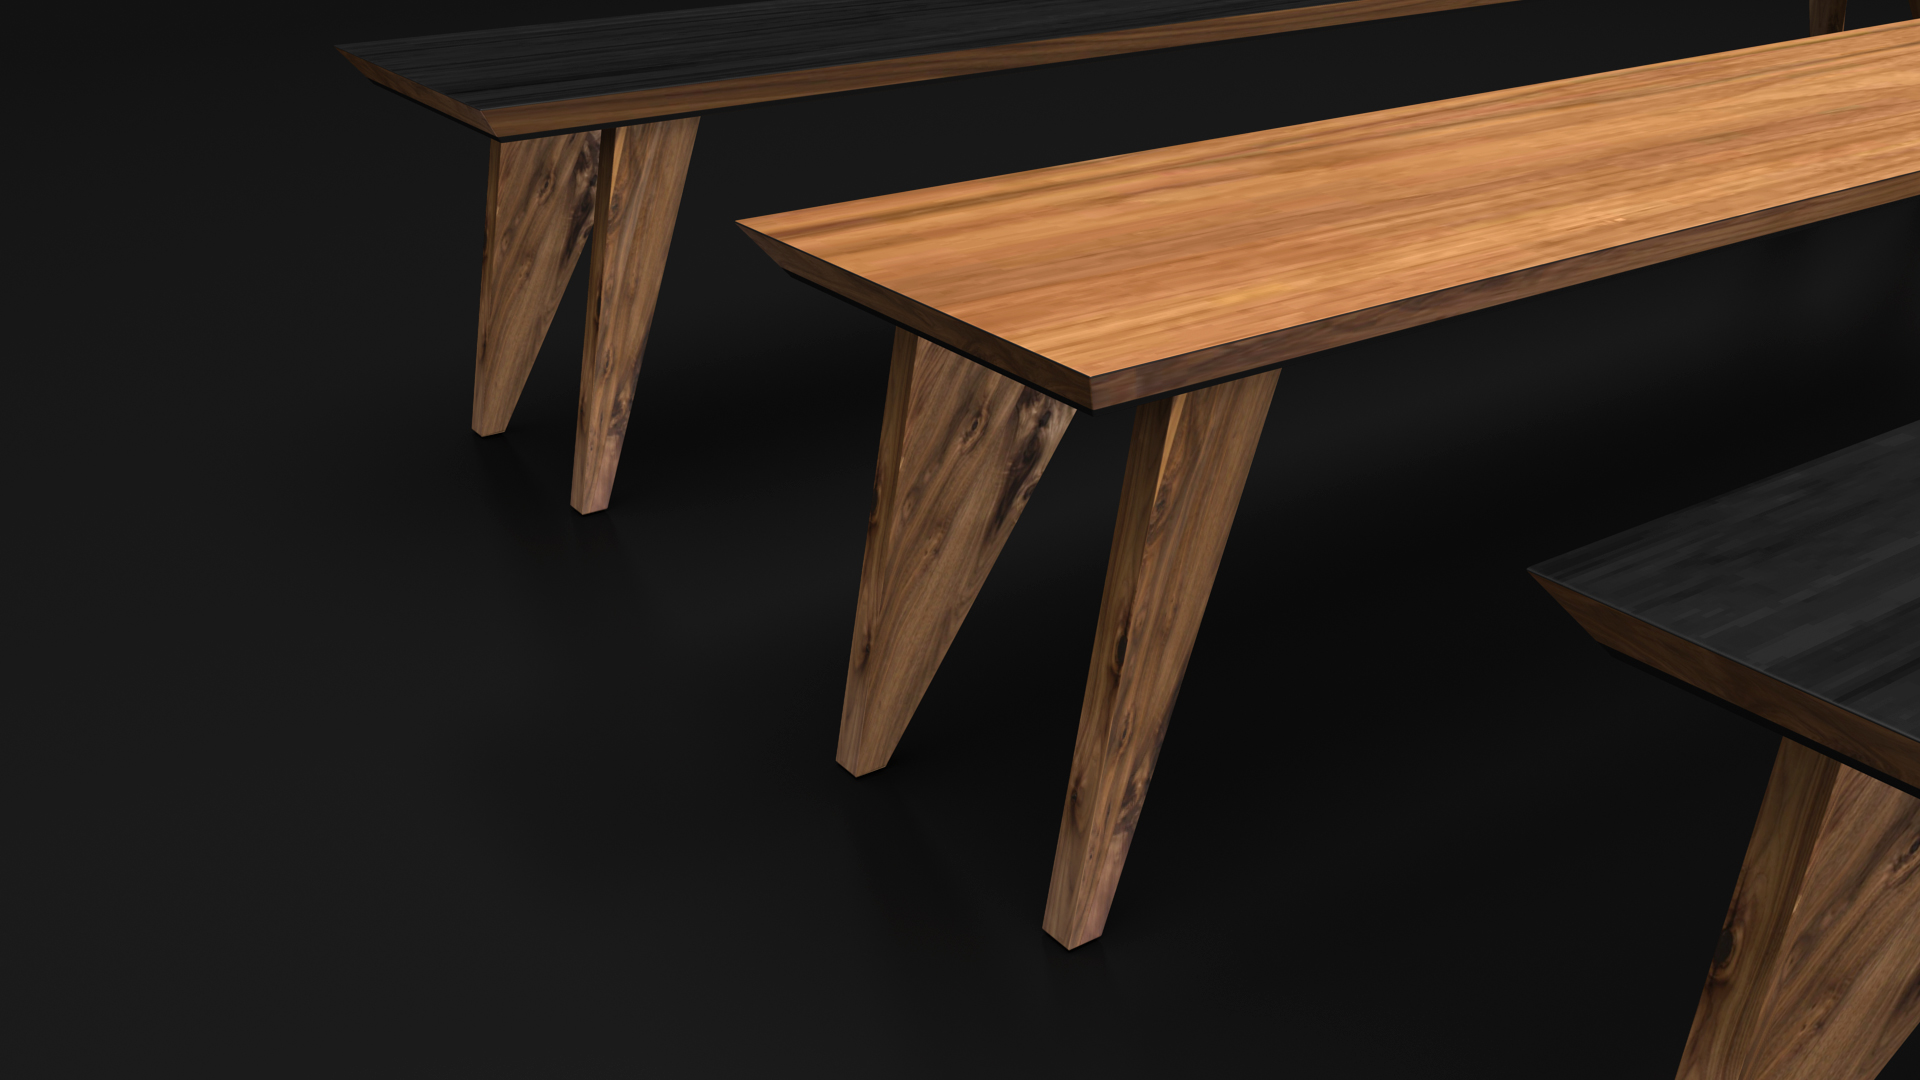 trigon-walnut-iso-02.jpg